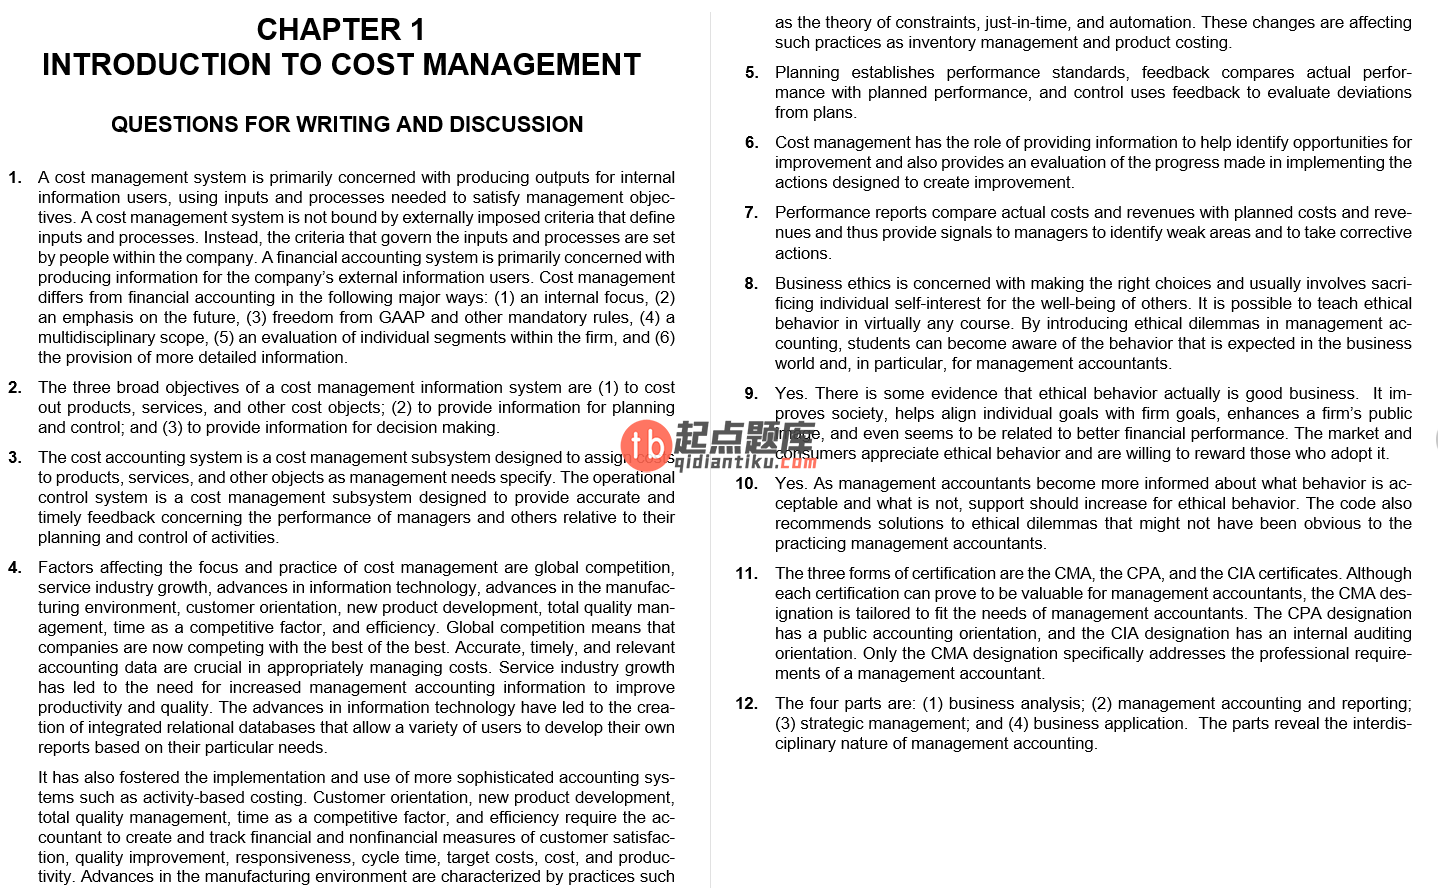 solution manual for Cost Management: Accounting and Control 6th edition的图片 4